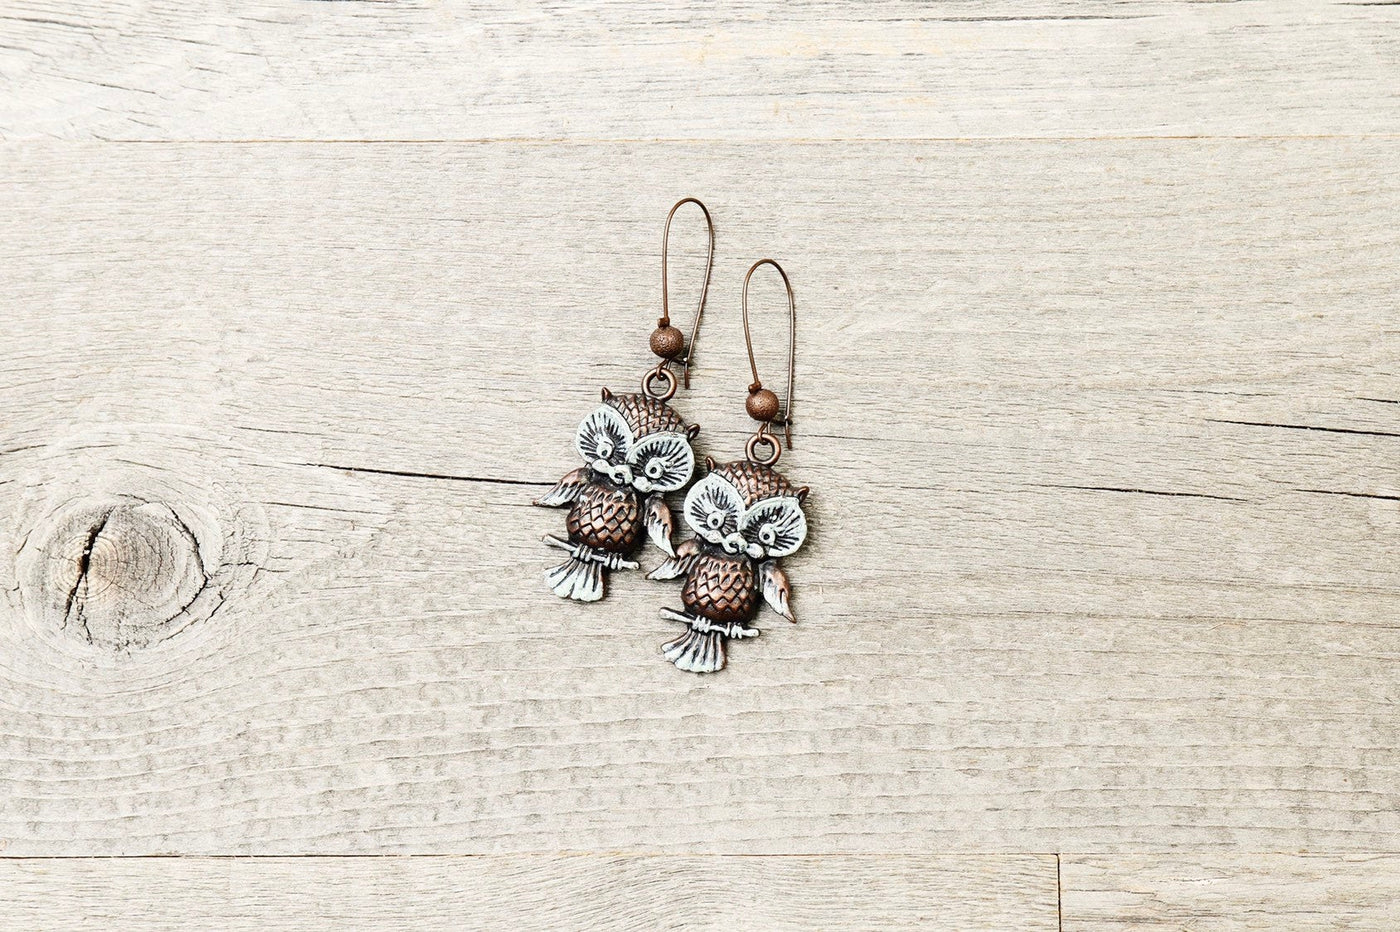 Blue Patina Owl Boho Earrings - Antique Metal Bird Cute Lovely Quirky Dangle Gypsy Hippie Unique Statement Bohemian Rustic Handmade Jewelry